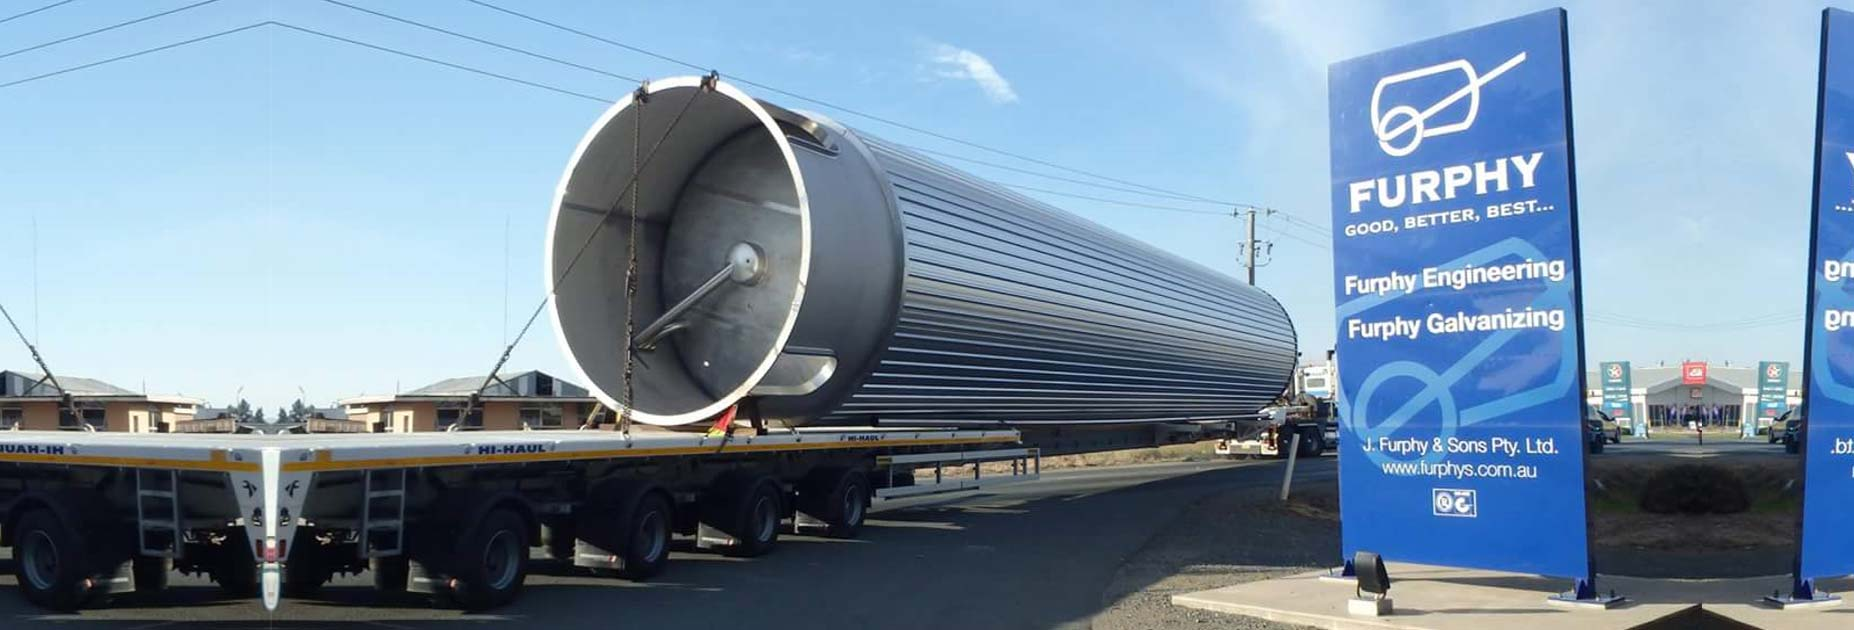 stainless steel tanks, engineering, vessels